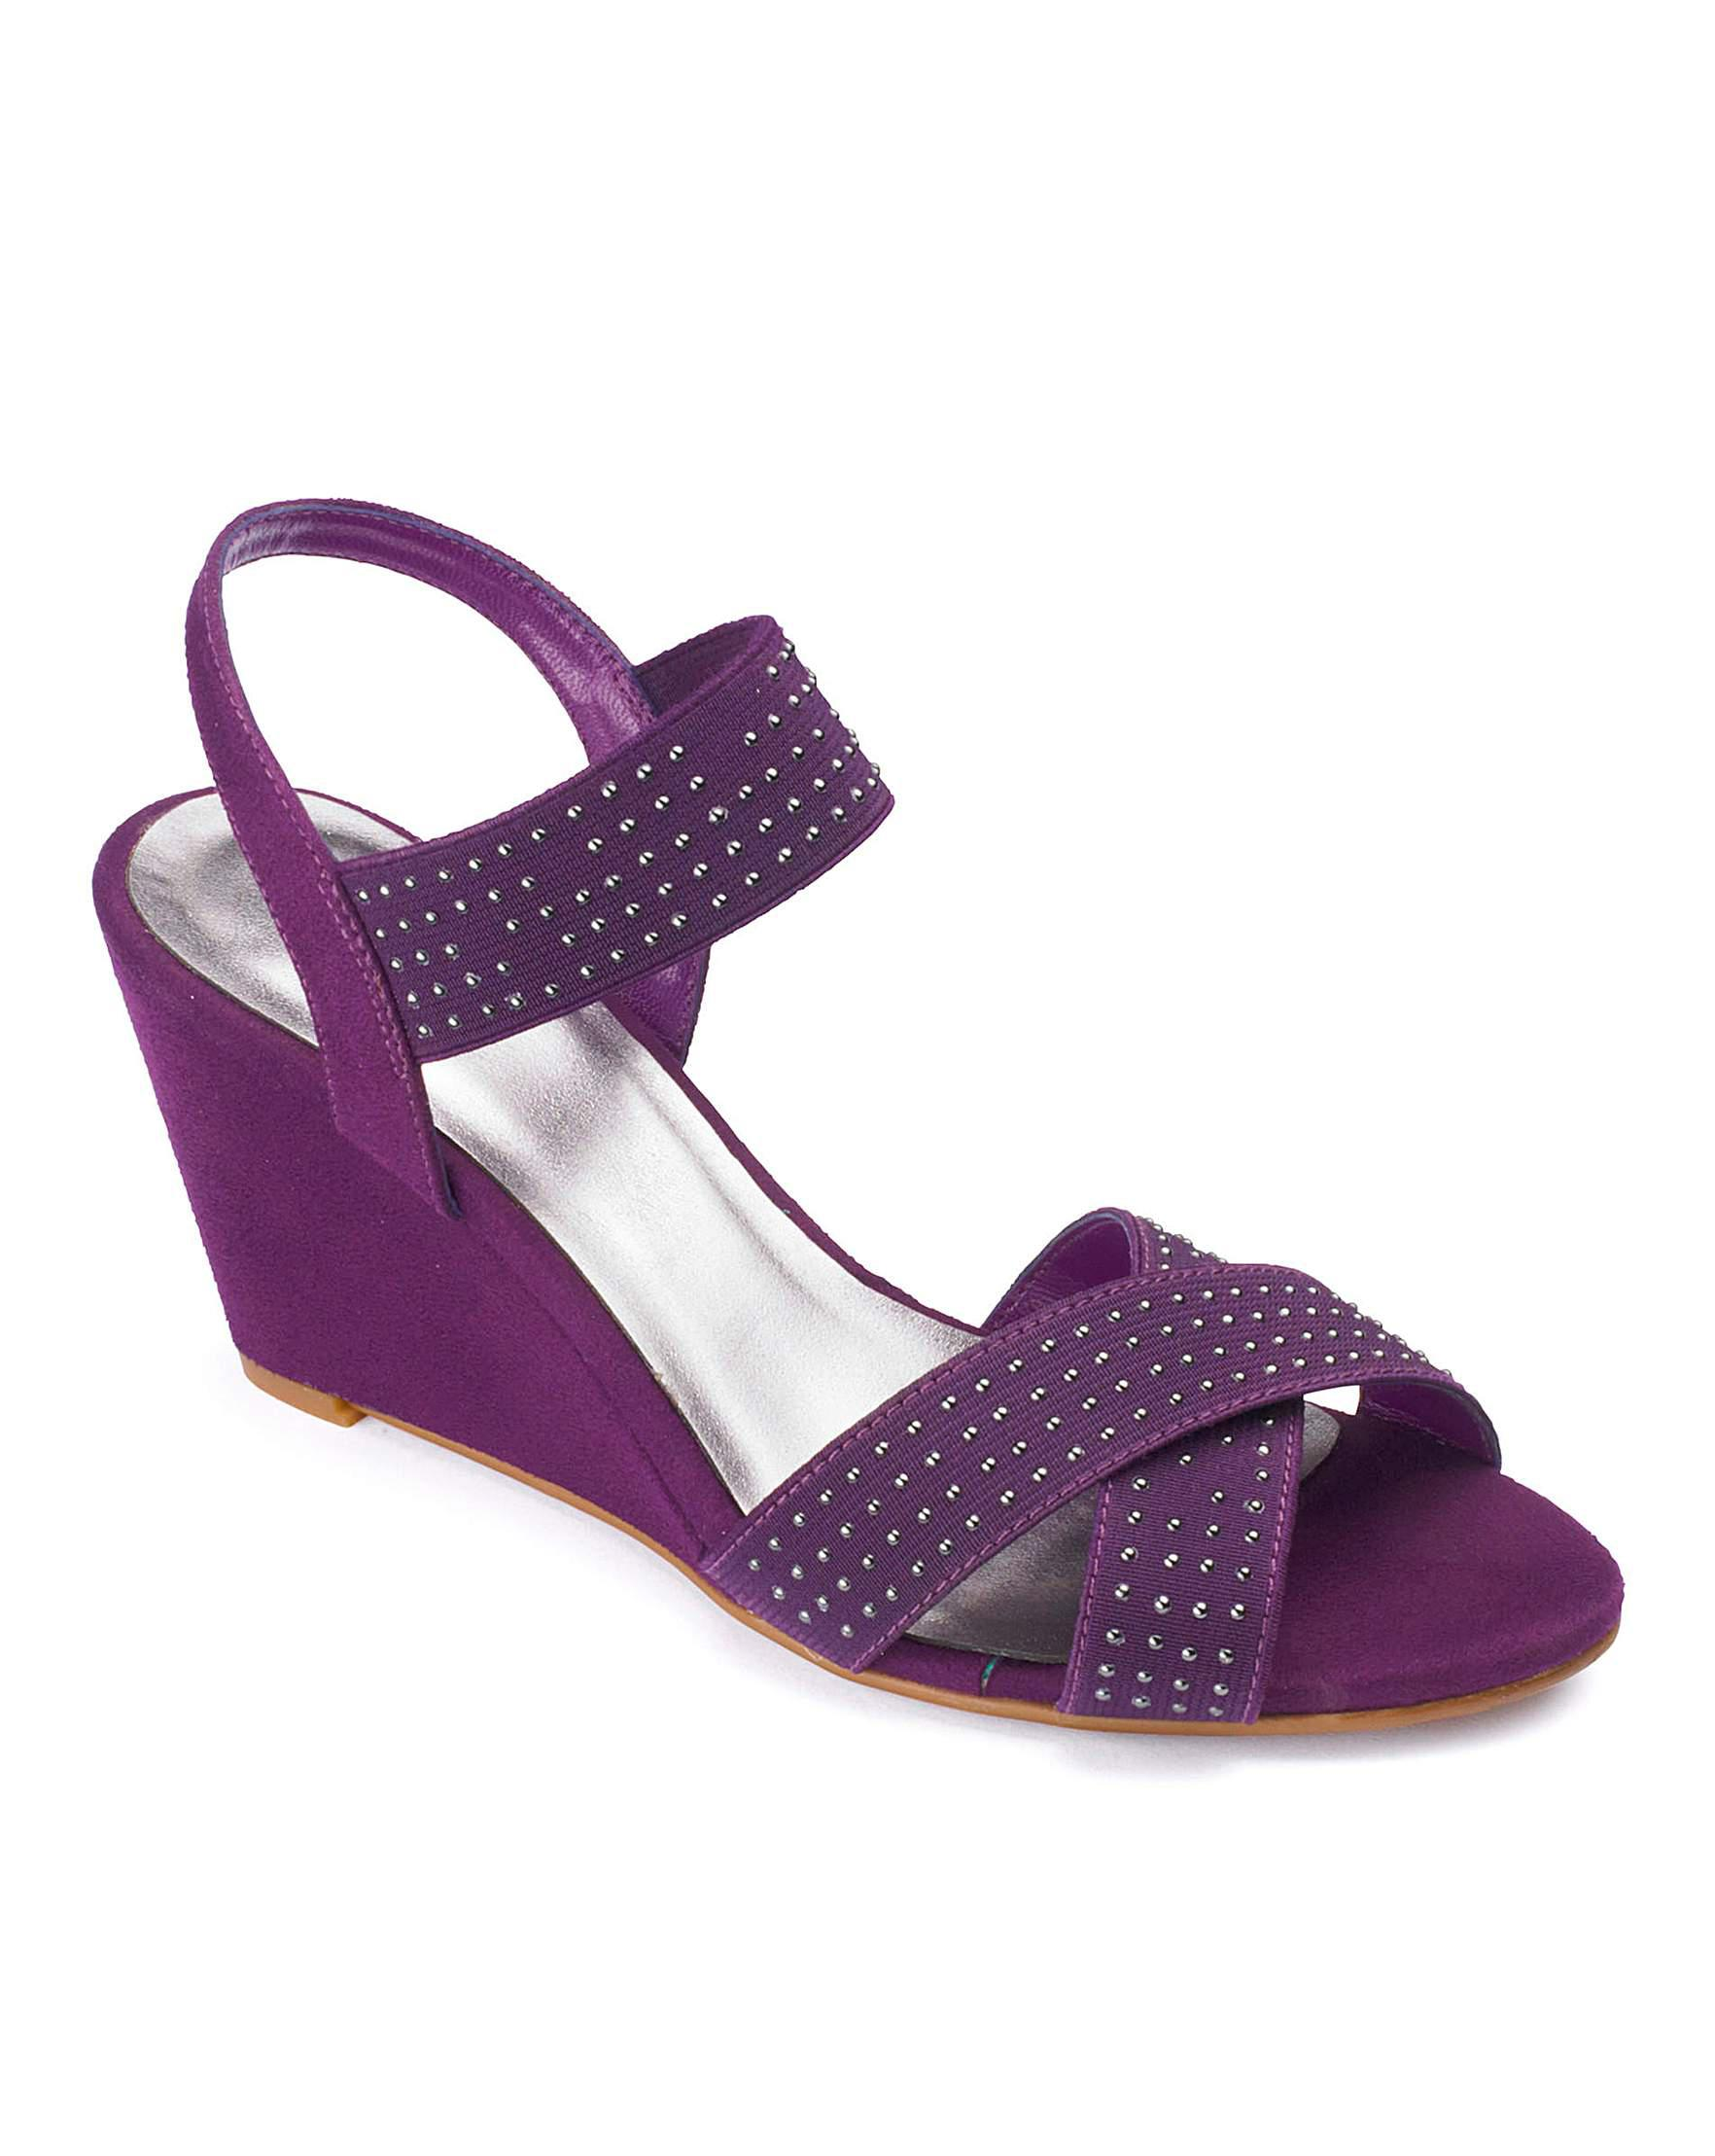 82893a8b3caa Sole Diva Elasticated Wedge E Fit in Purple - Lyst